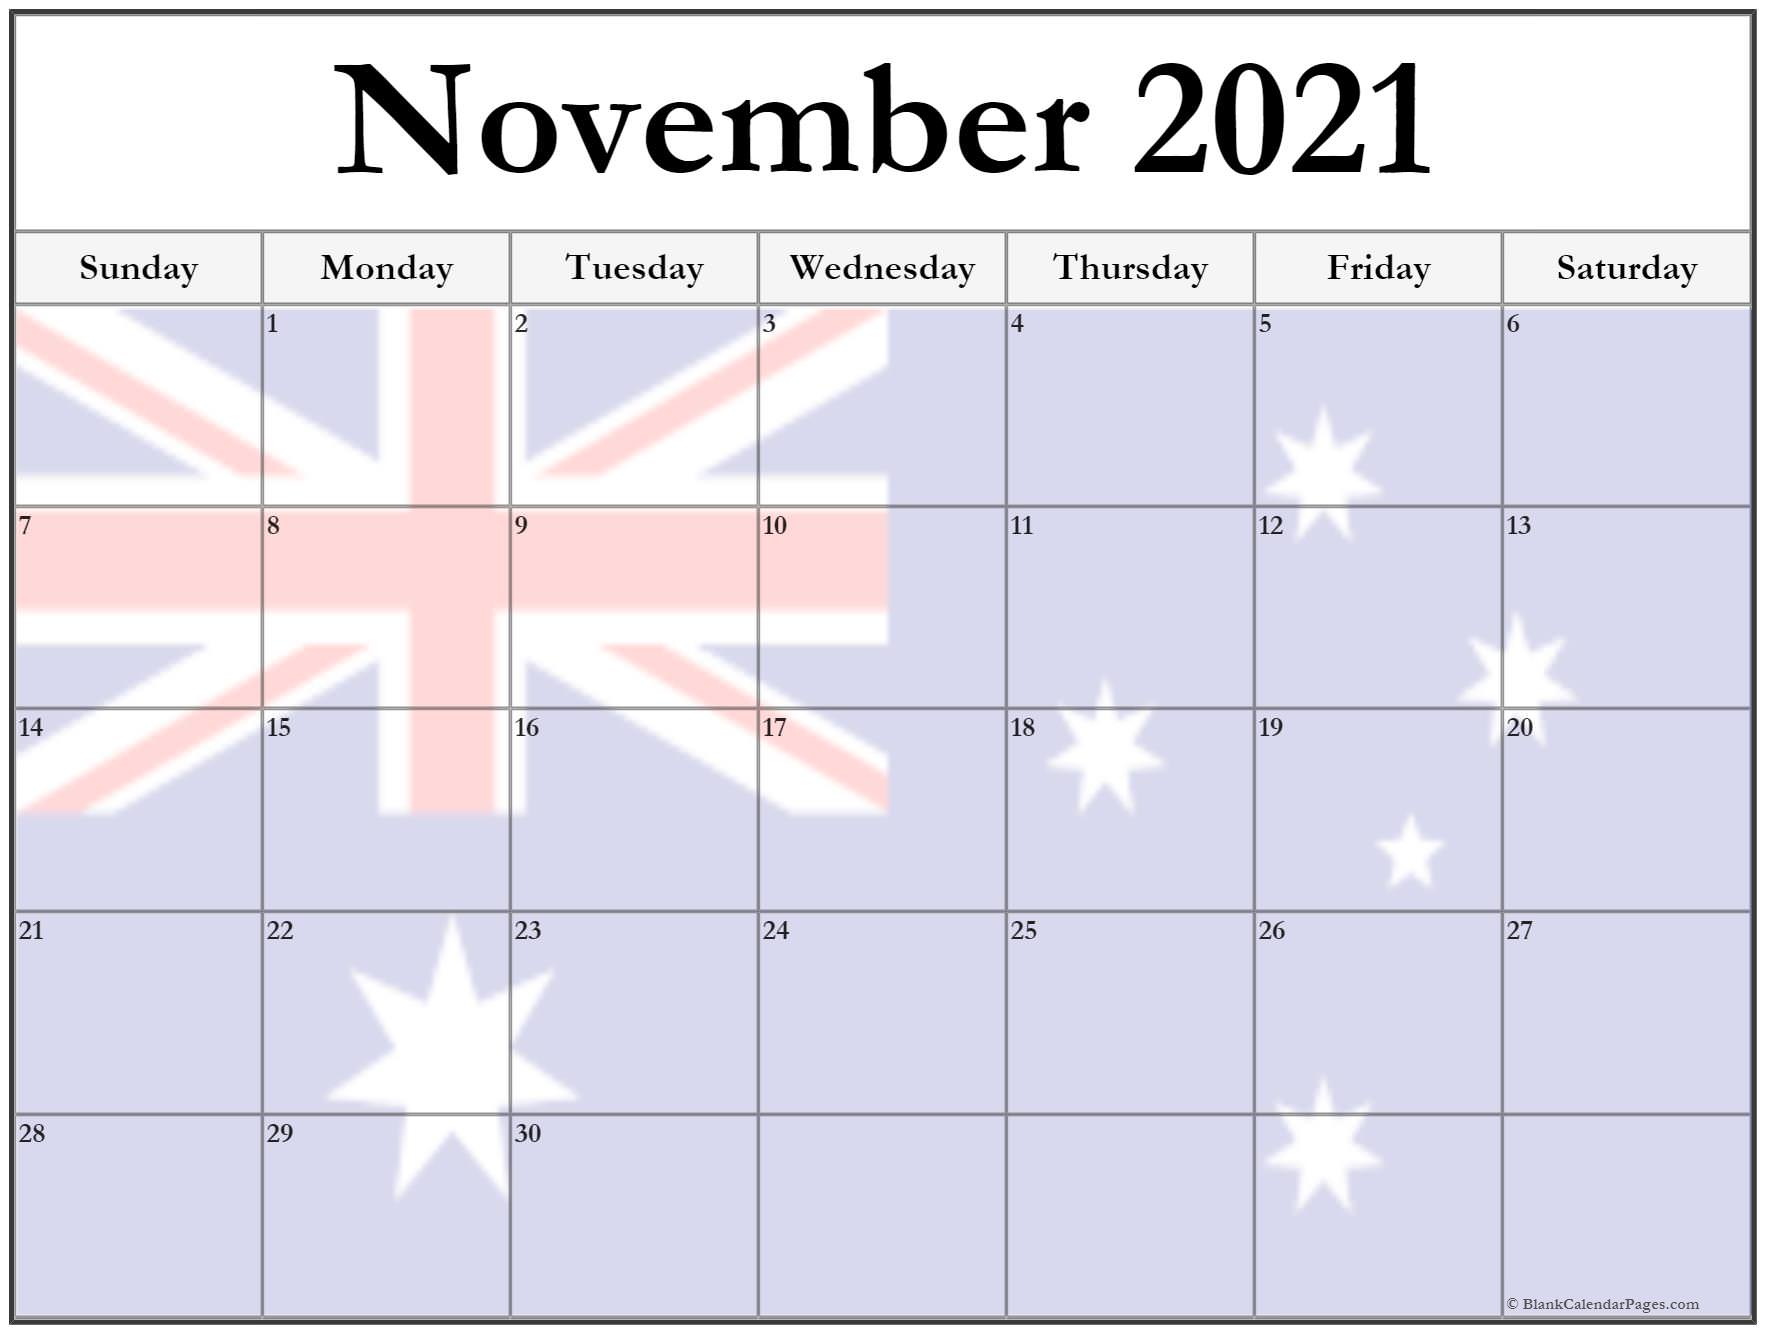 Thanksgiving dates 2019 in Australia